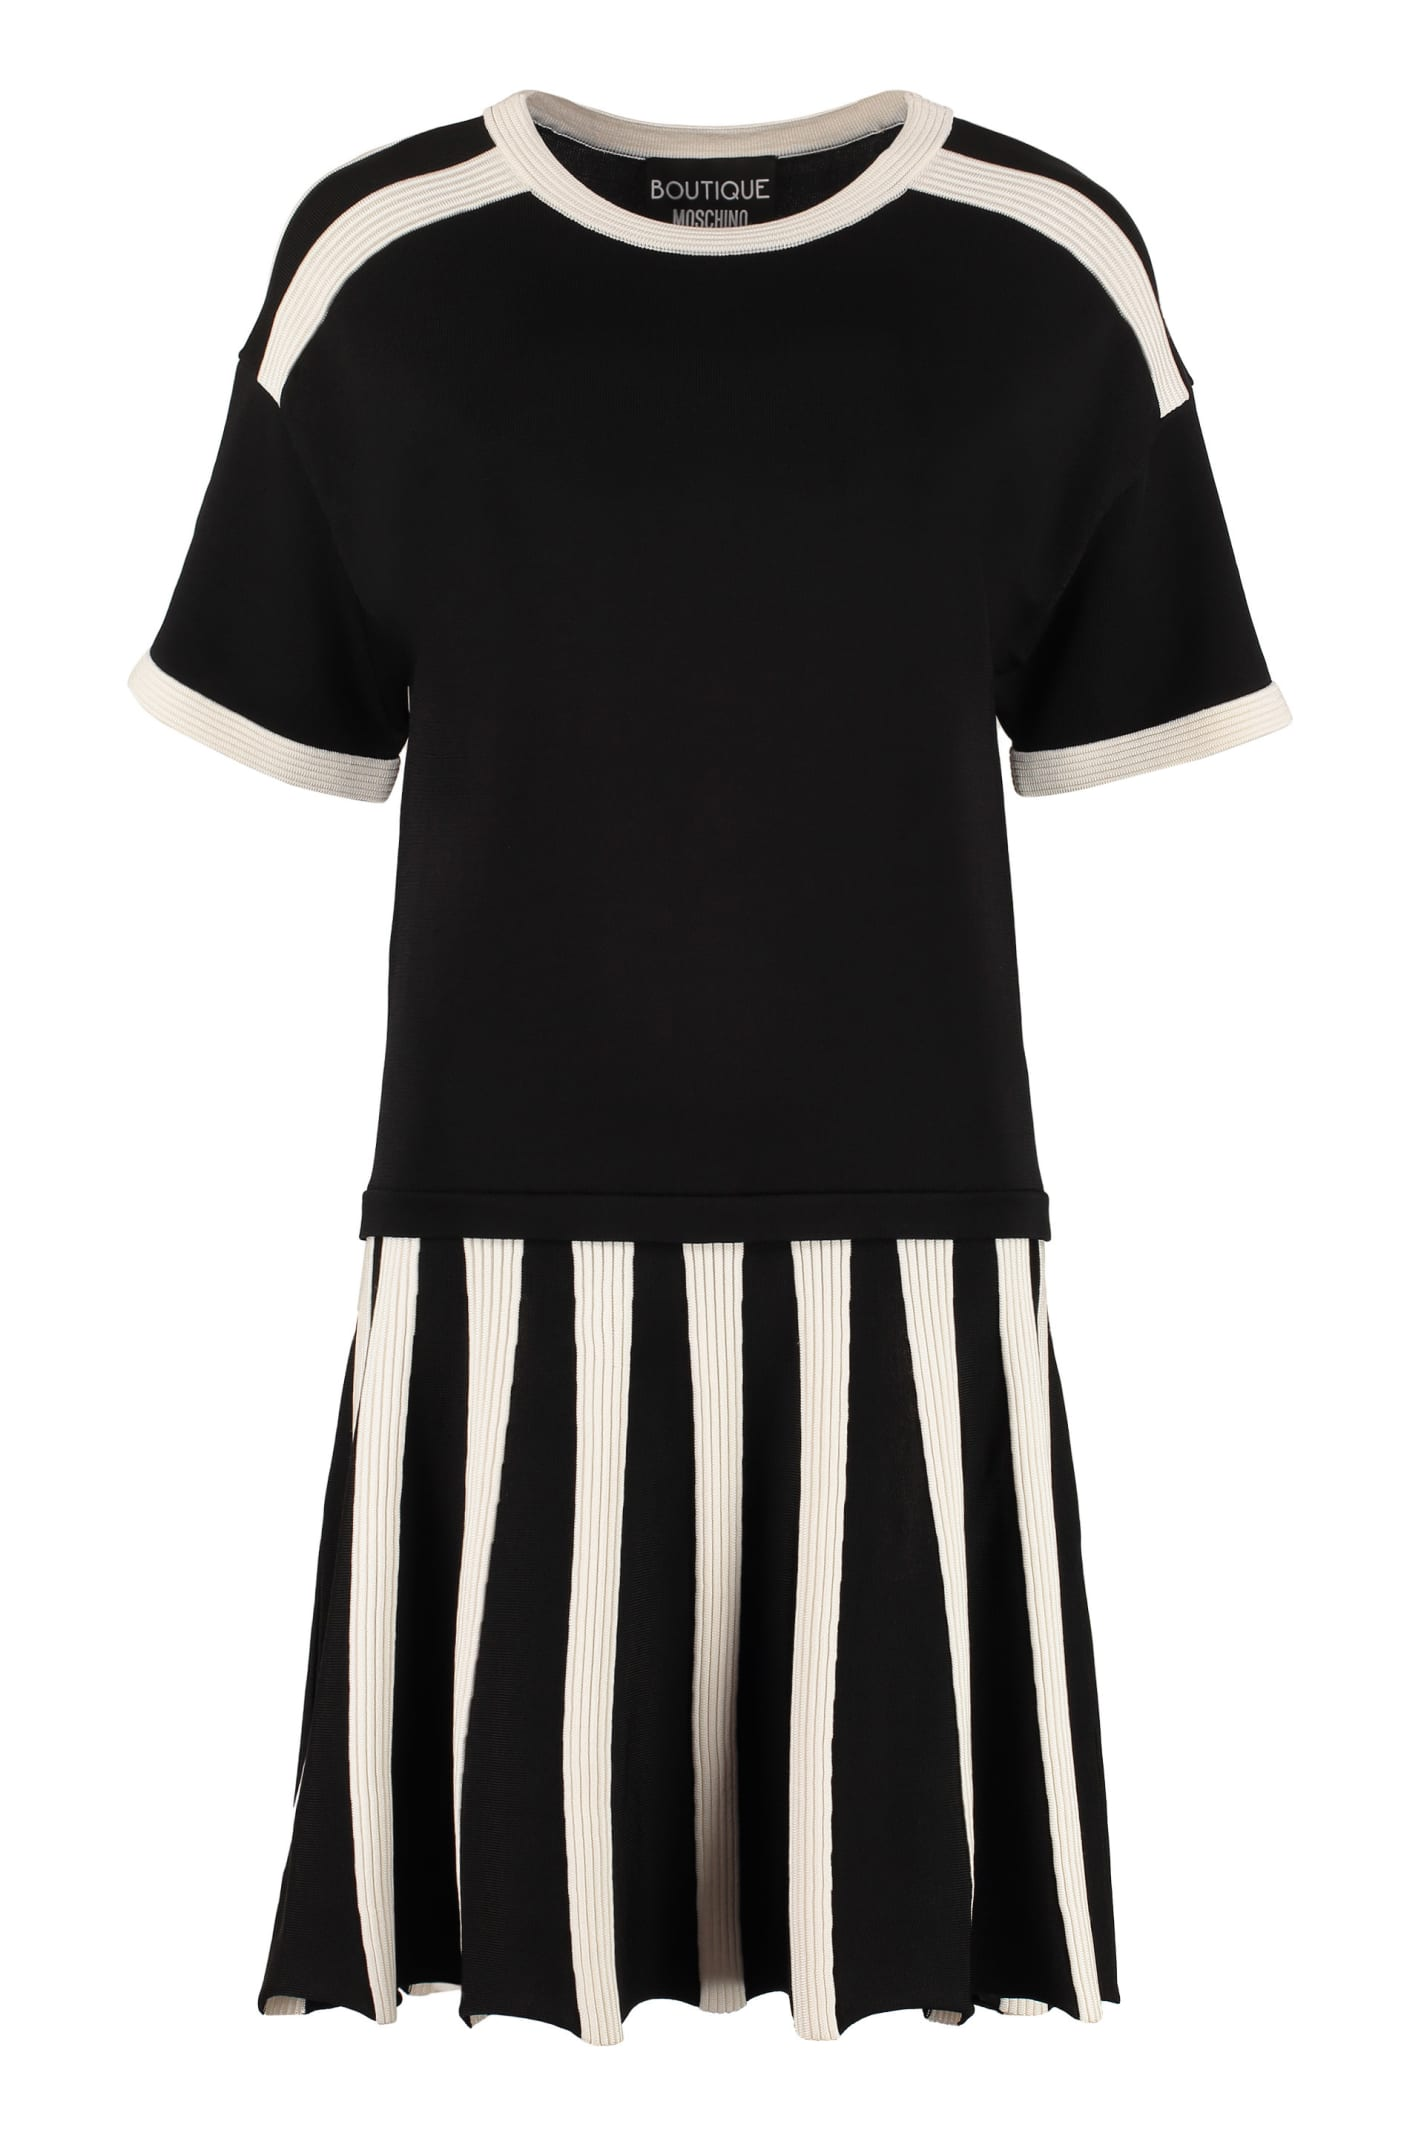 Buy Boutique Moschino Sweater Dress online, shop Boutique Moschino with free shipping